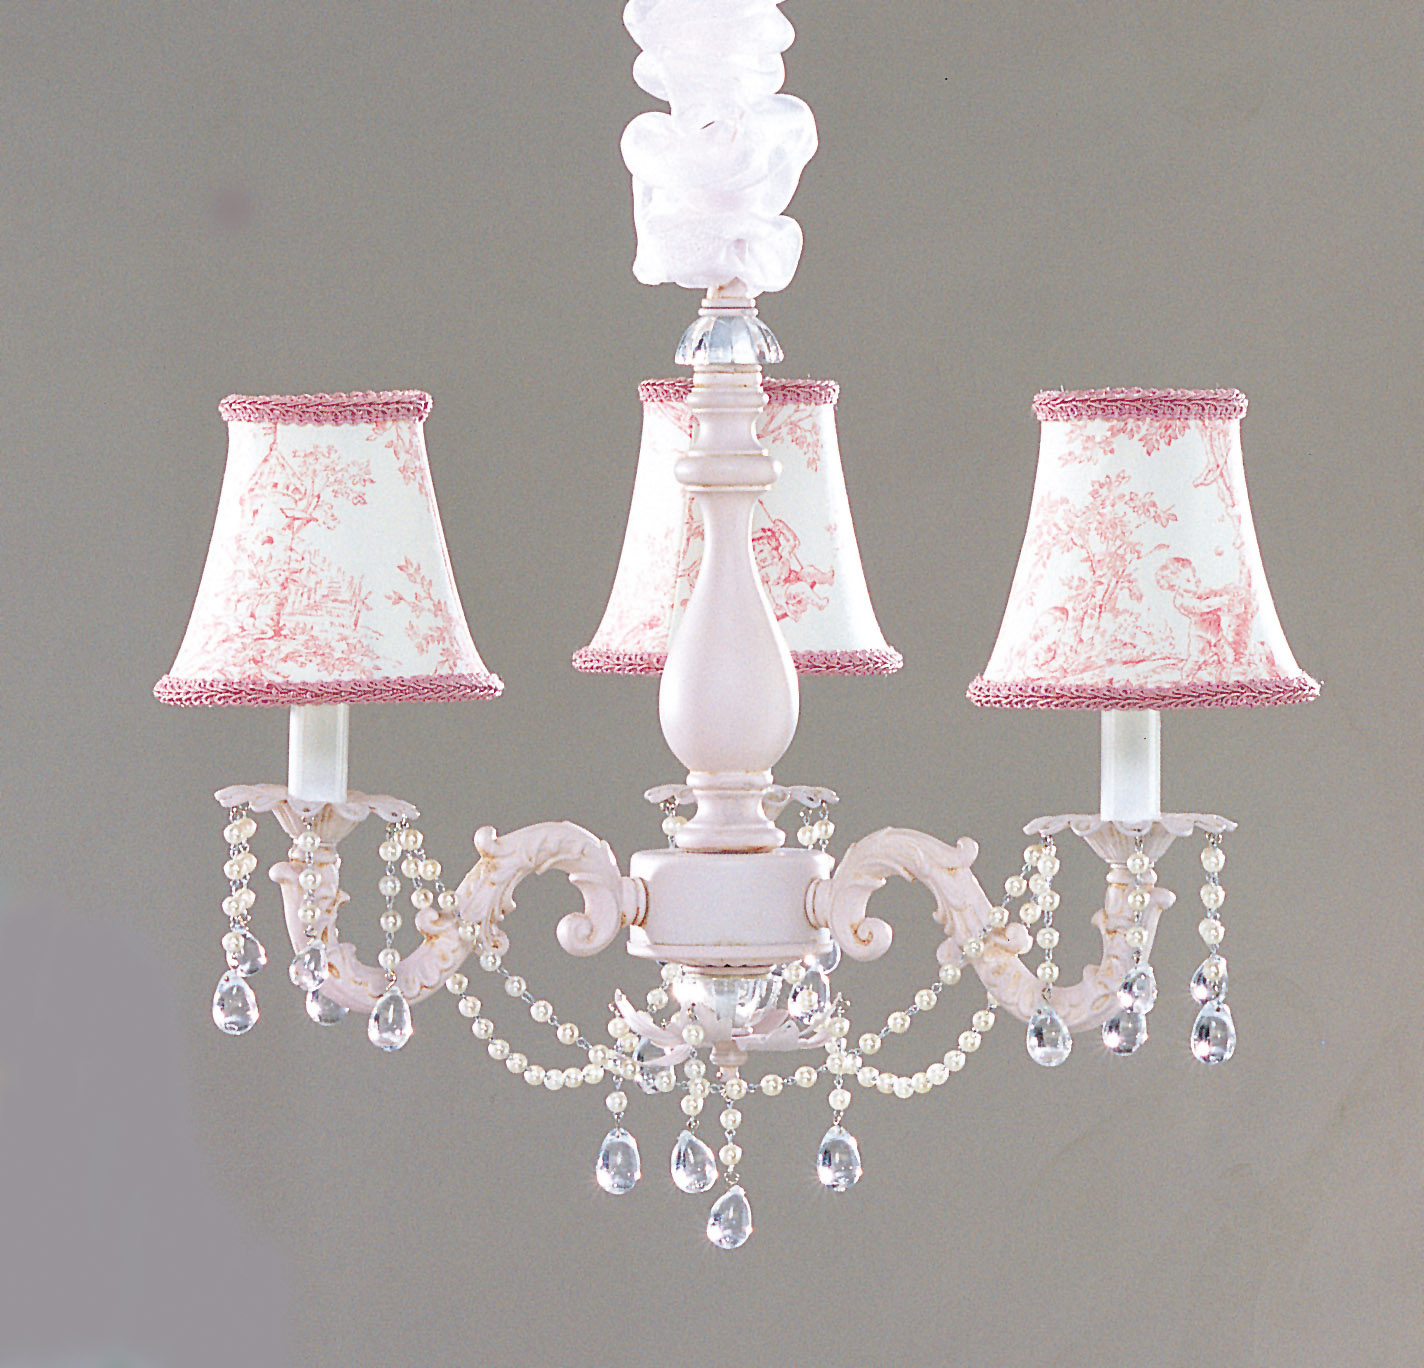 I lite 4 u shabby chic style mini chandeliers lighting anna1g 443300 bytes arubaitofo Gallery